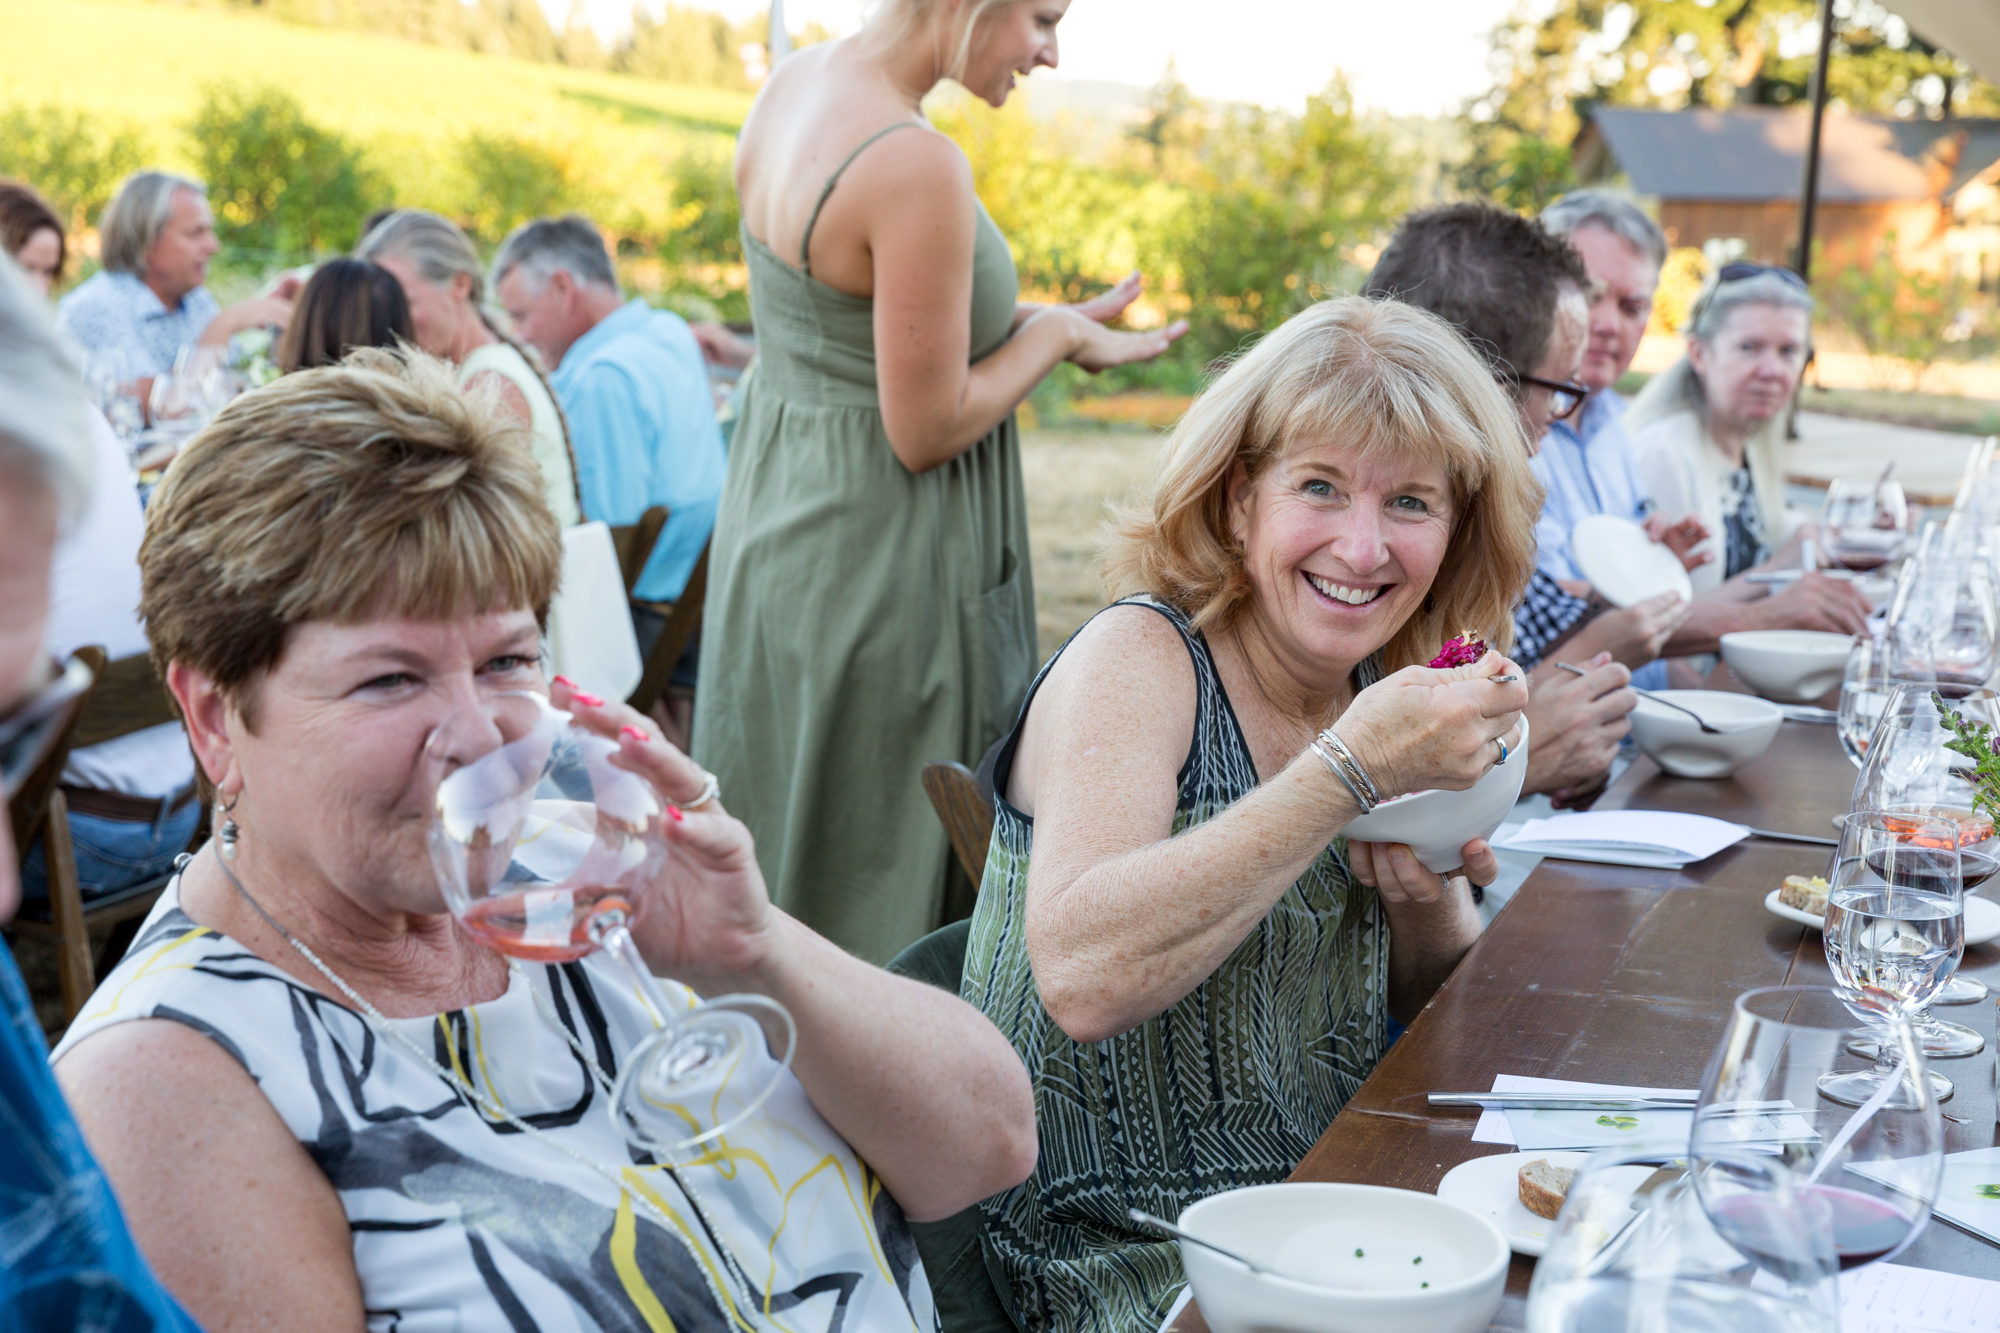 c stoll soter ipnc 2018 divot bowl guest 4 smiles outdoor supper.jpg